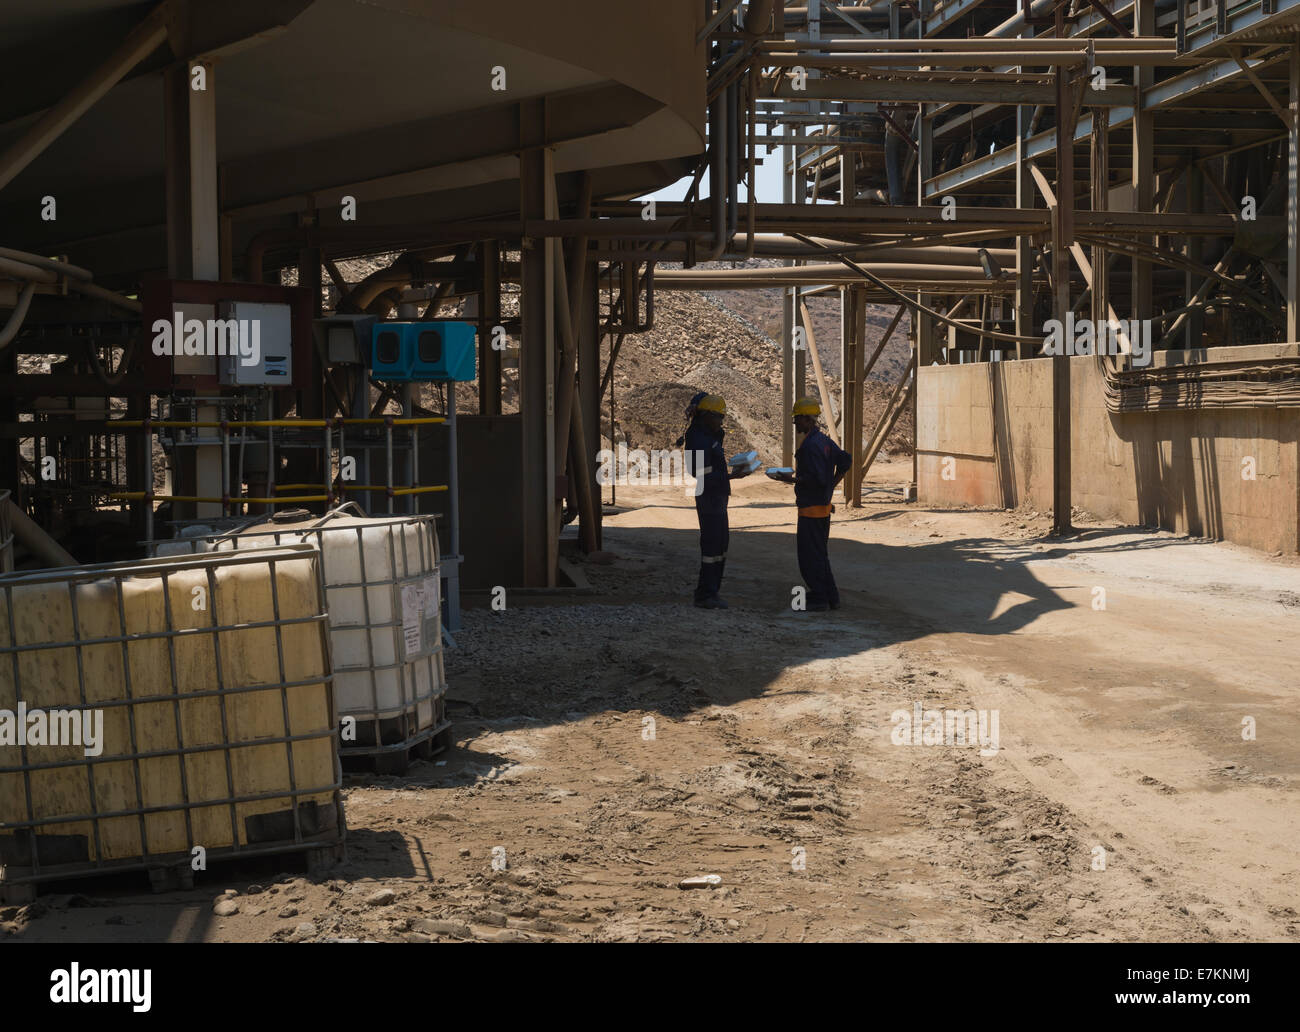 A supervisors converses with a worker in the shade of a beneficiation plant of a large African open pit copper mine. - Stock Image